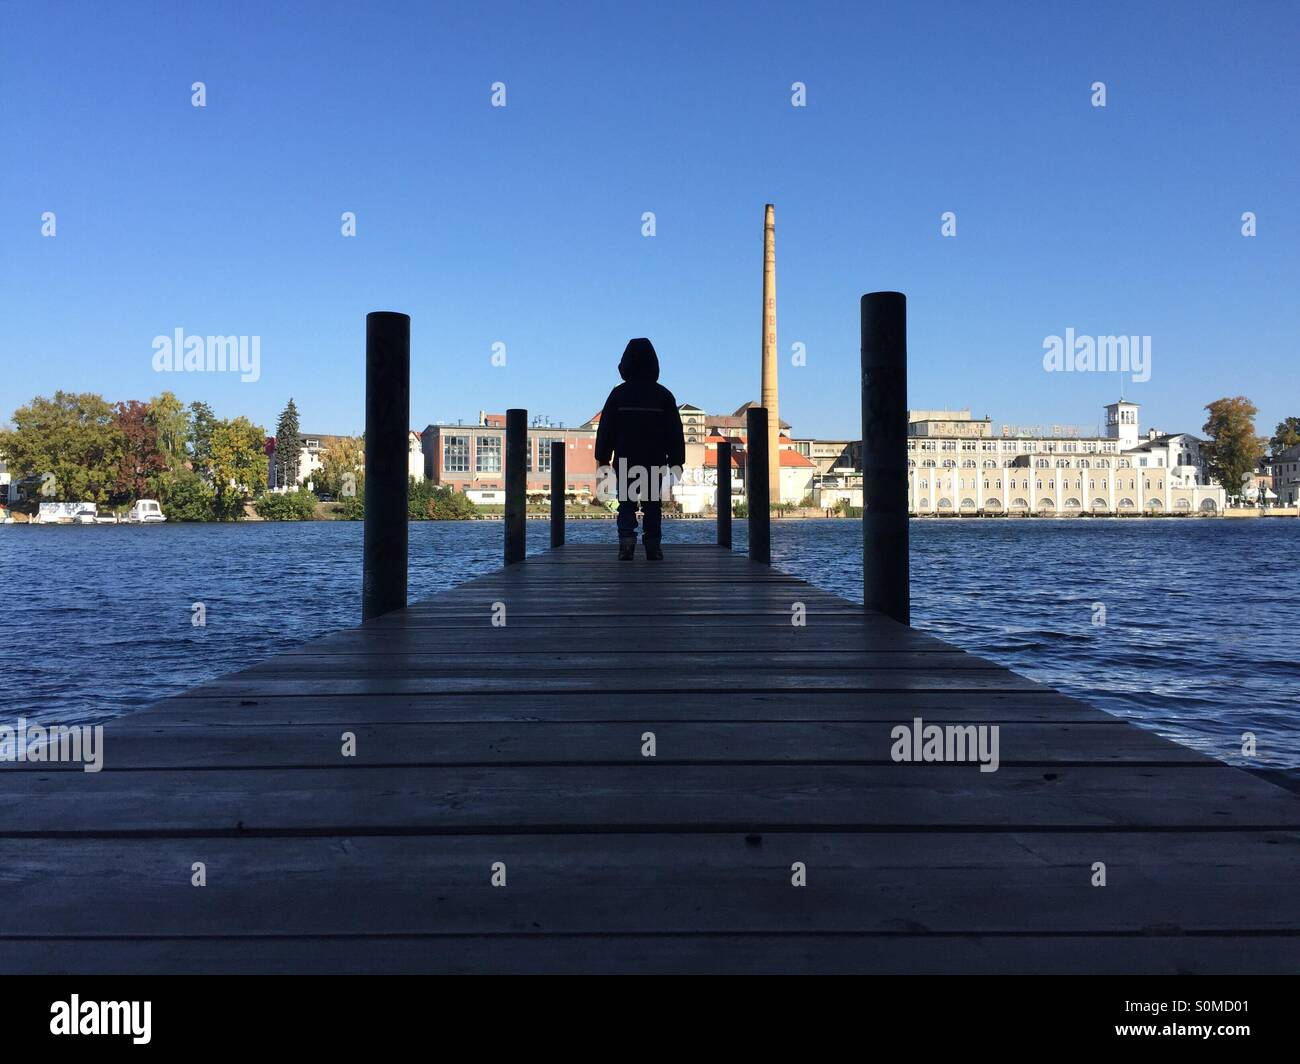 Young boy standing on a jetty Stock Photo